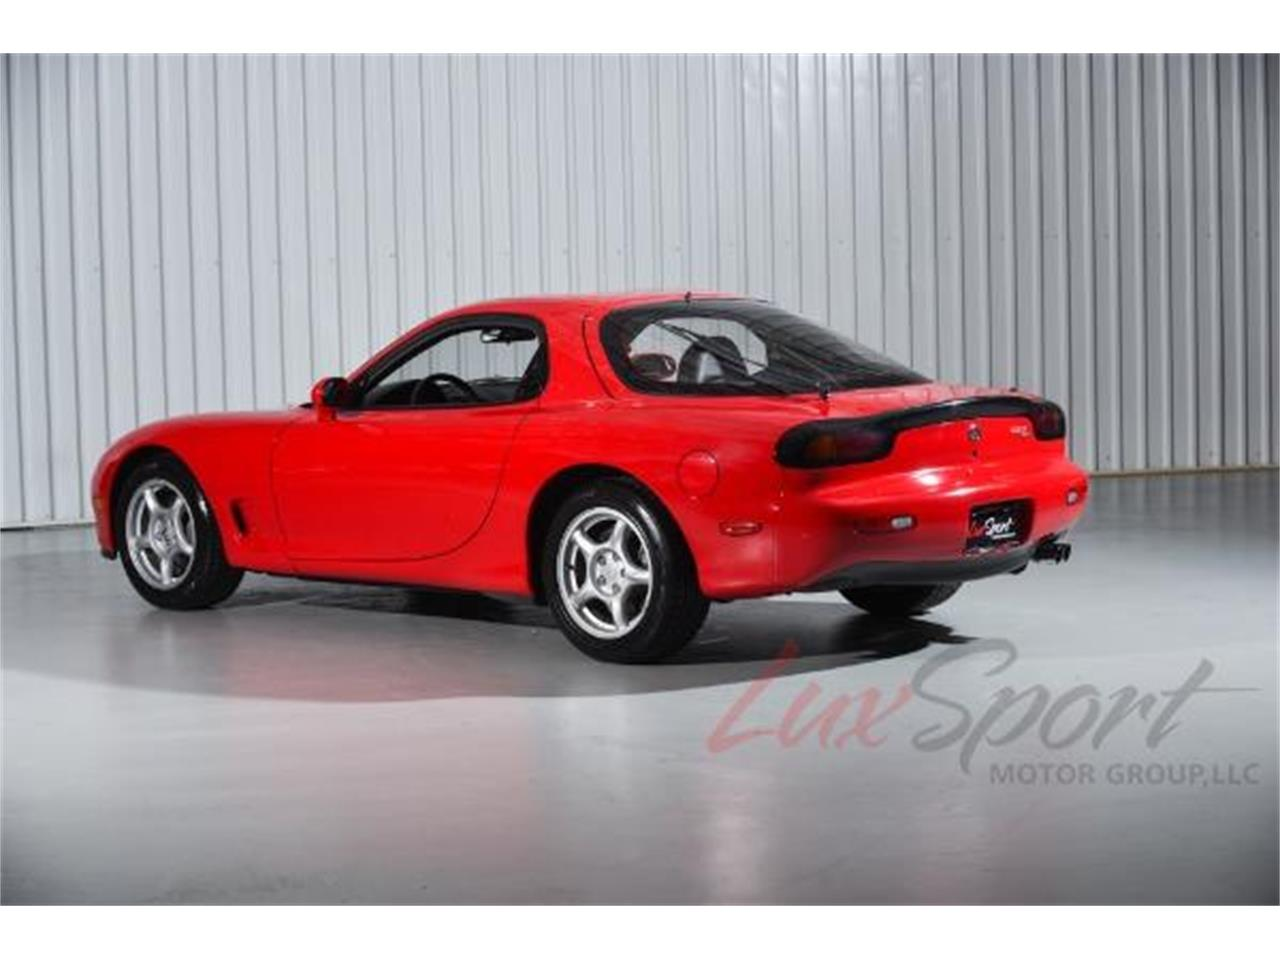 Large Picture of 1993 Mazda RX-7 located in New York Offered by LuxSport Motor Group, LLC - MO02